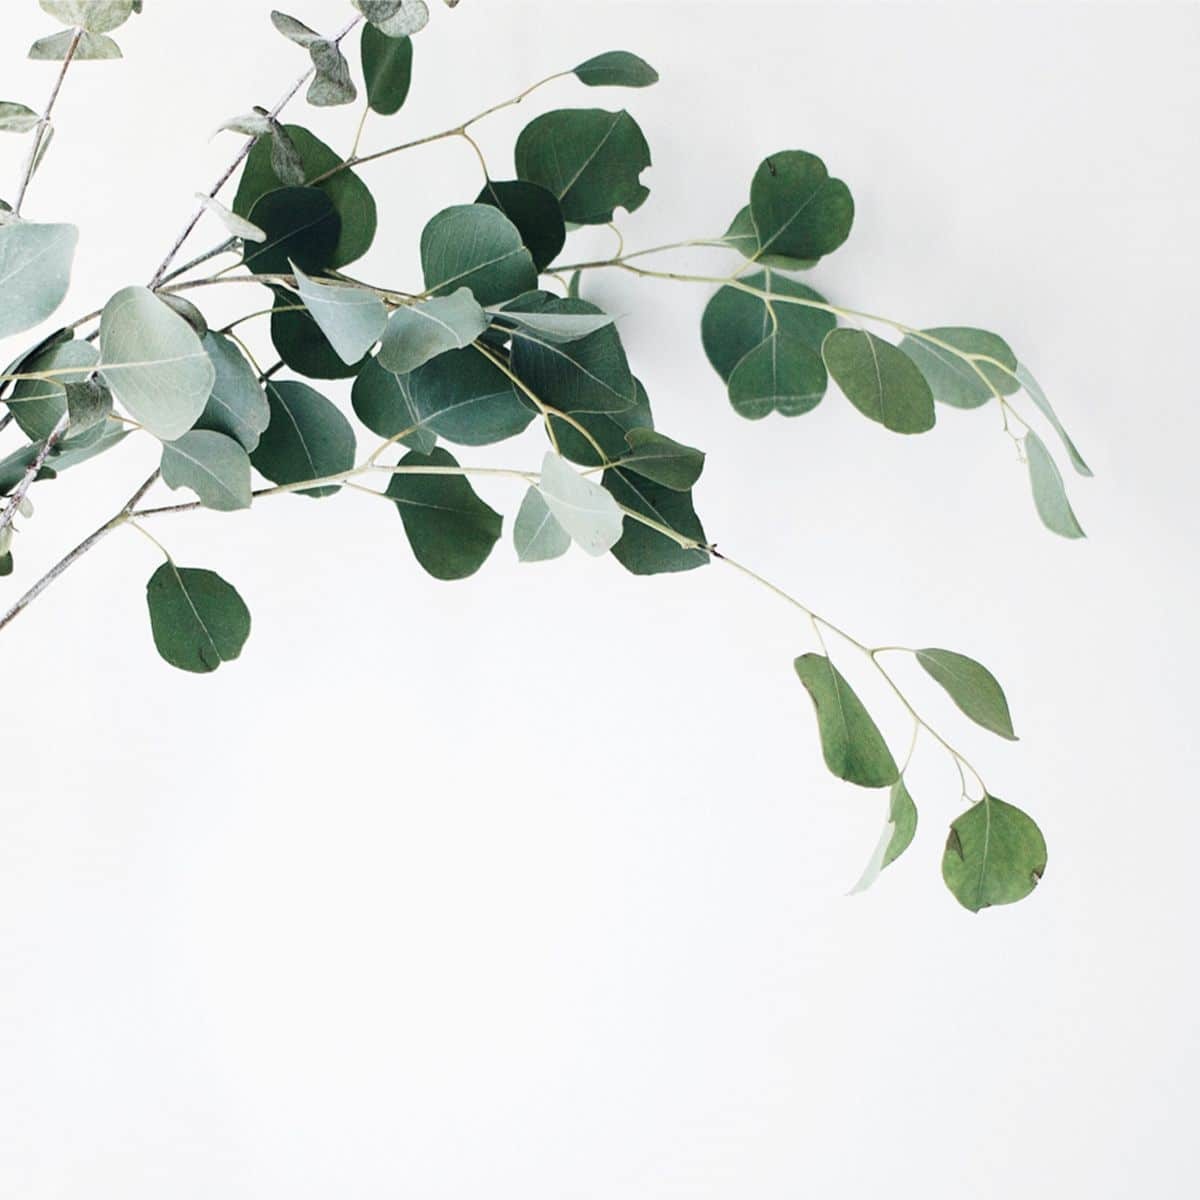 leaves hanging off a branch